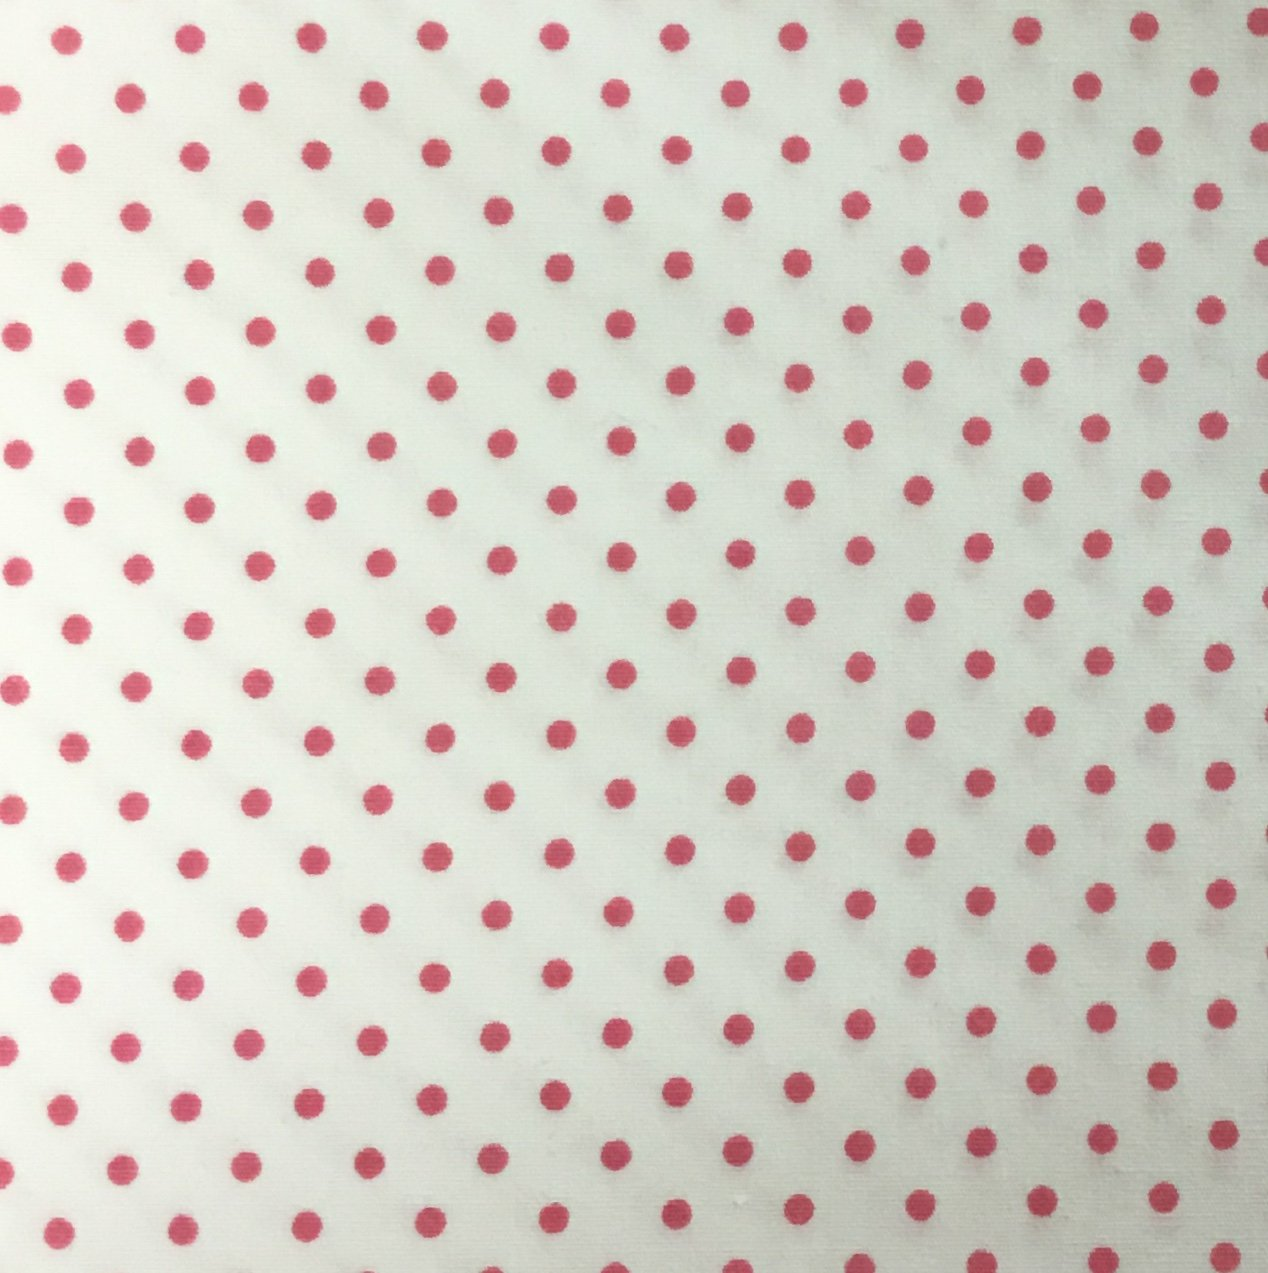 Hot Pink Spots on White - 88190-2-21